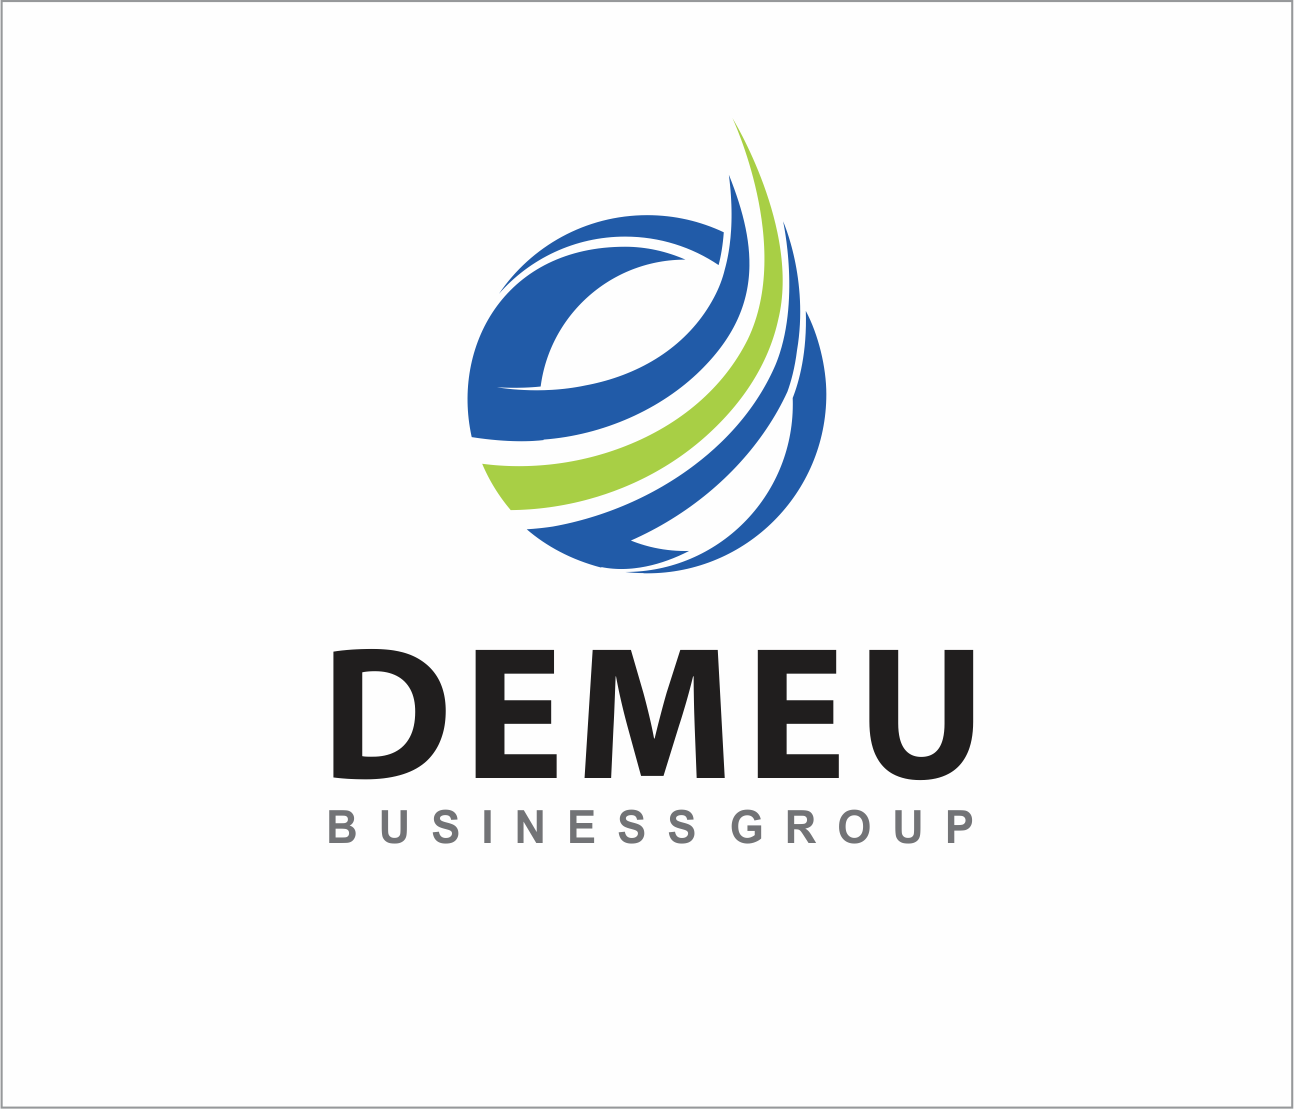 Logo Design by Armada Jamaluddin - Entry No. 162 in the Logo Design Contest Captivating Logo Design for DEMEU Business Group.